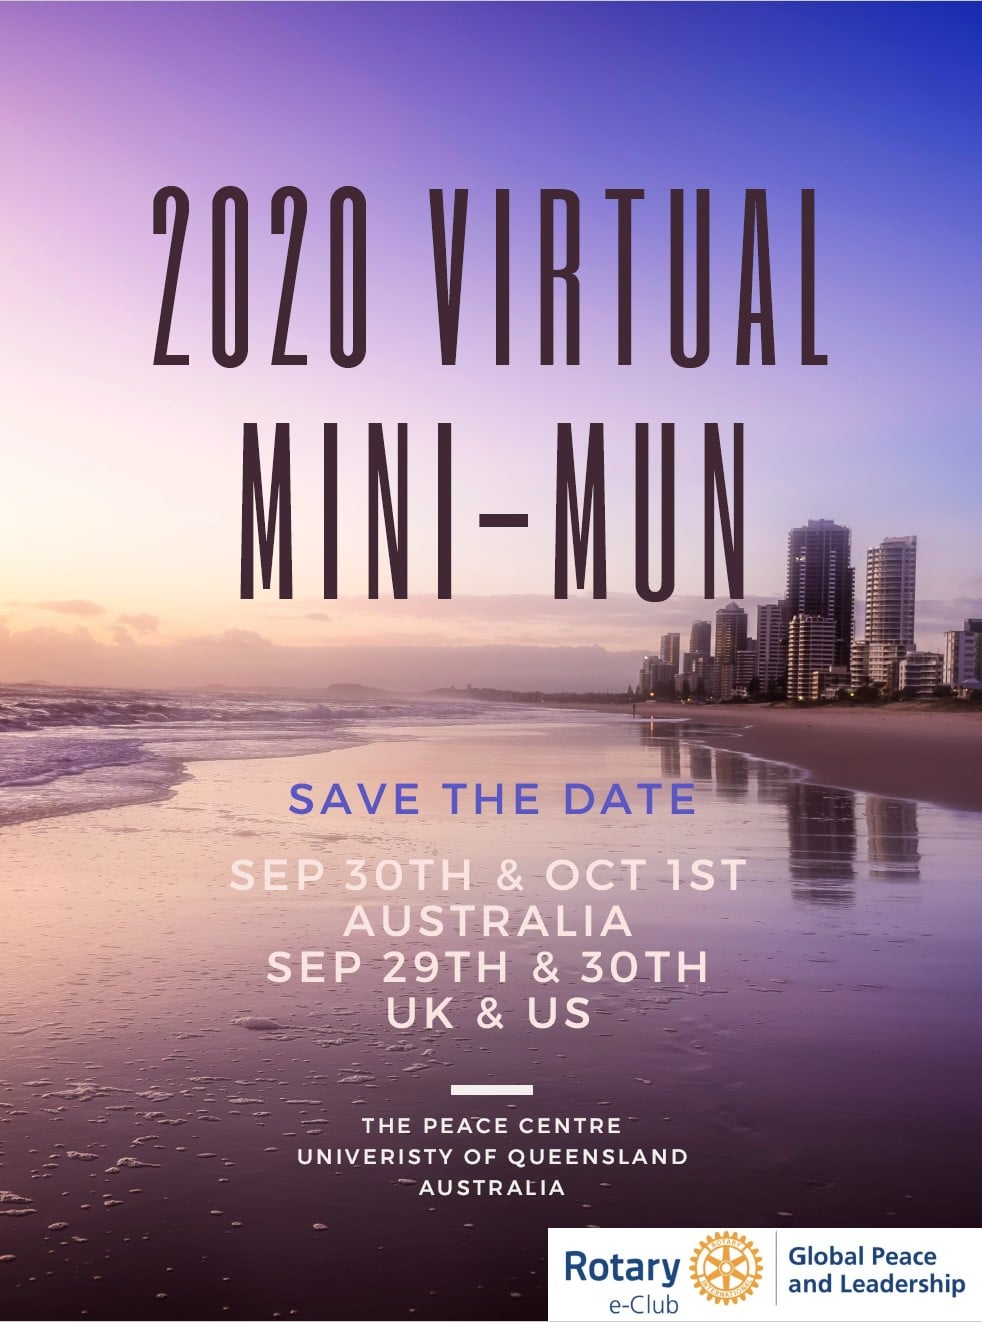 Apply now for 2020 Virtual Mini MUN